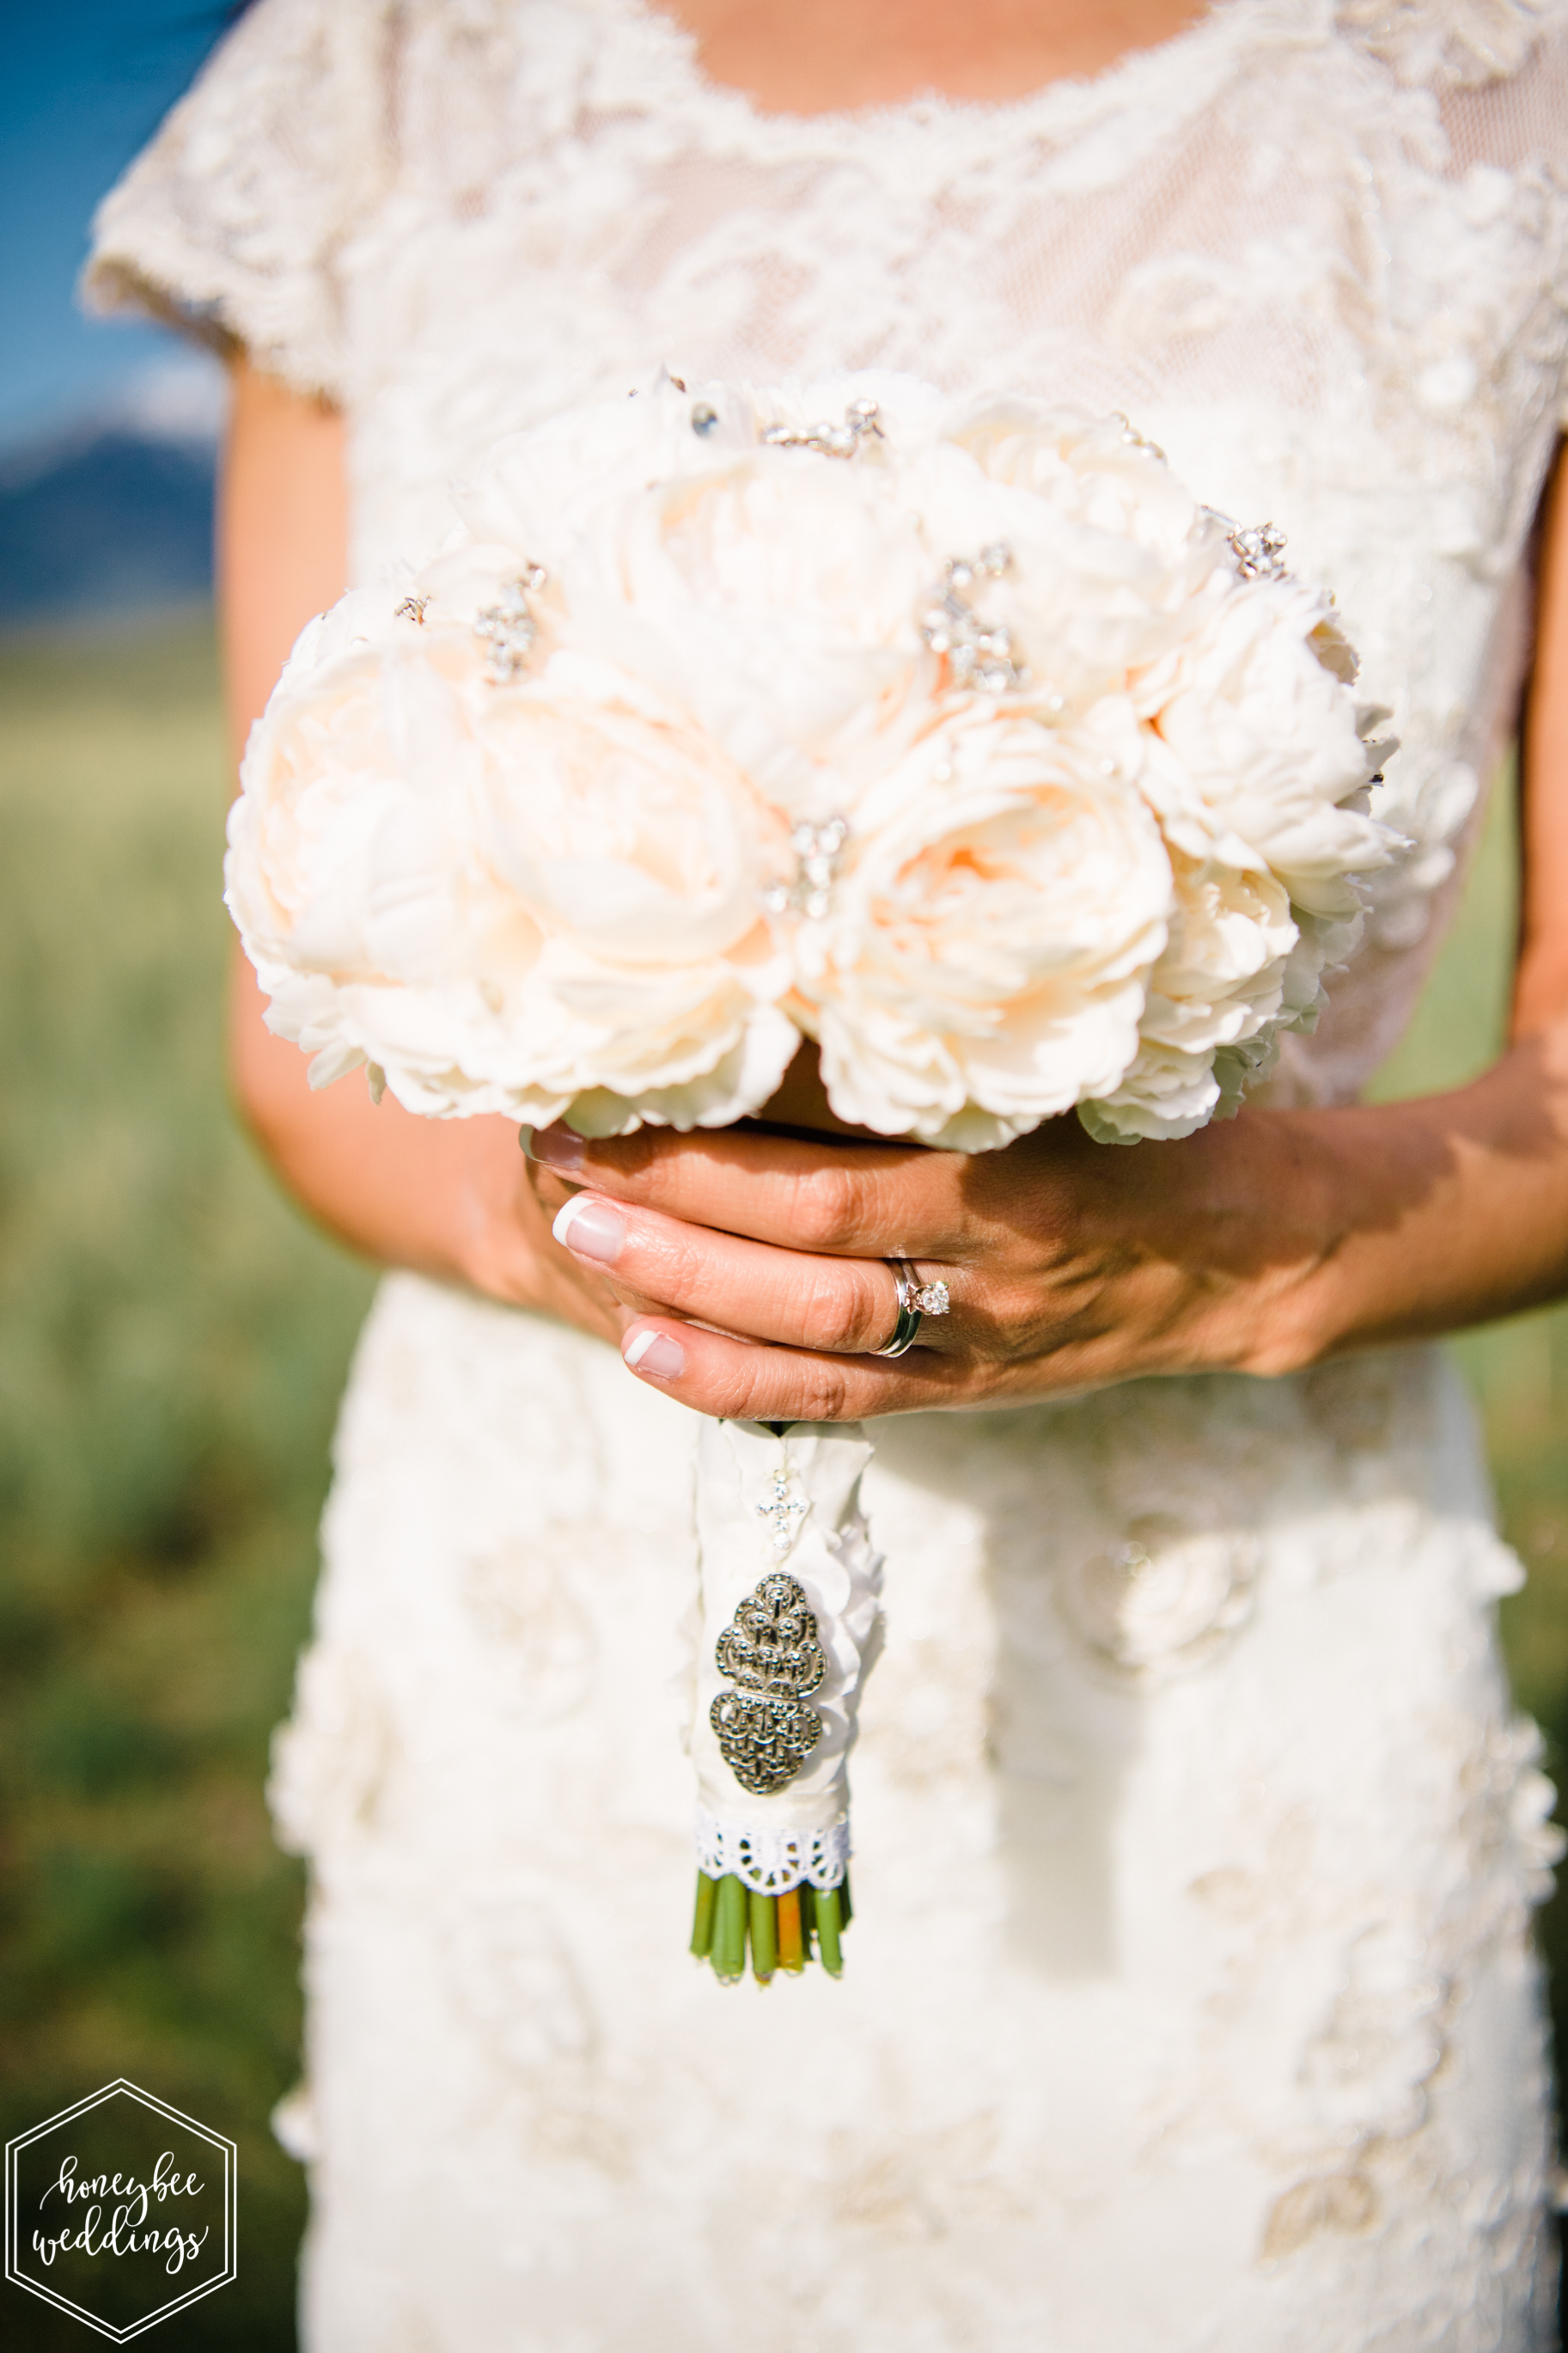 031Montana wedding photographer videographer_Chico hot springs wedding_Honeybee Weddings_Claudia & Bill_June 03, 2019-641.jpg